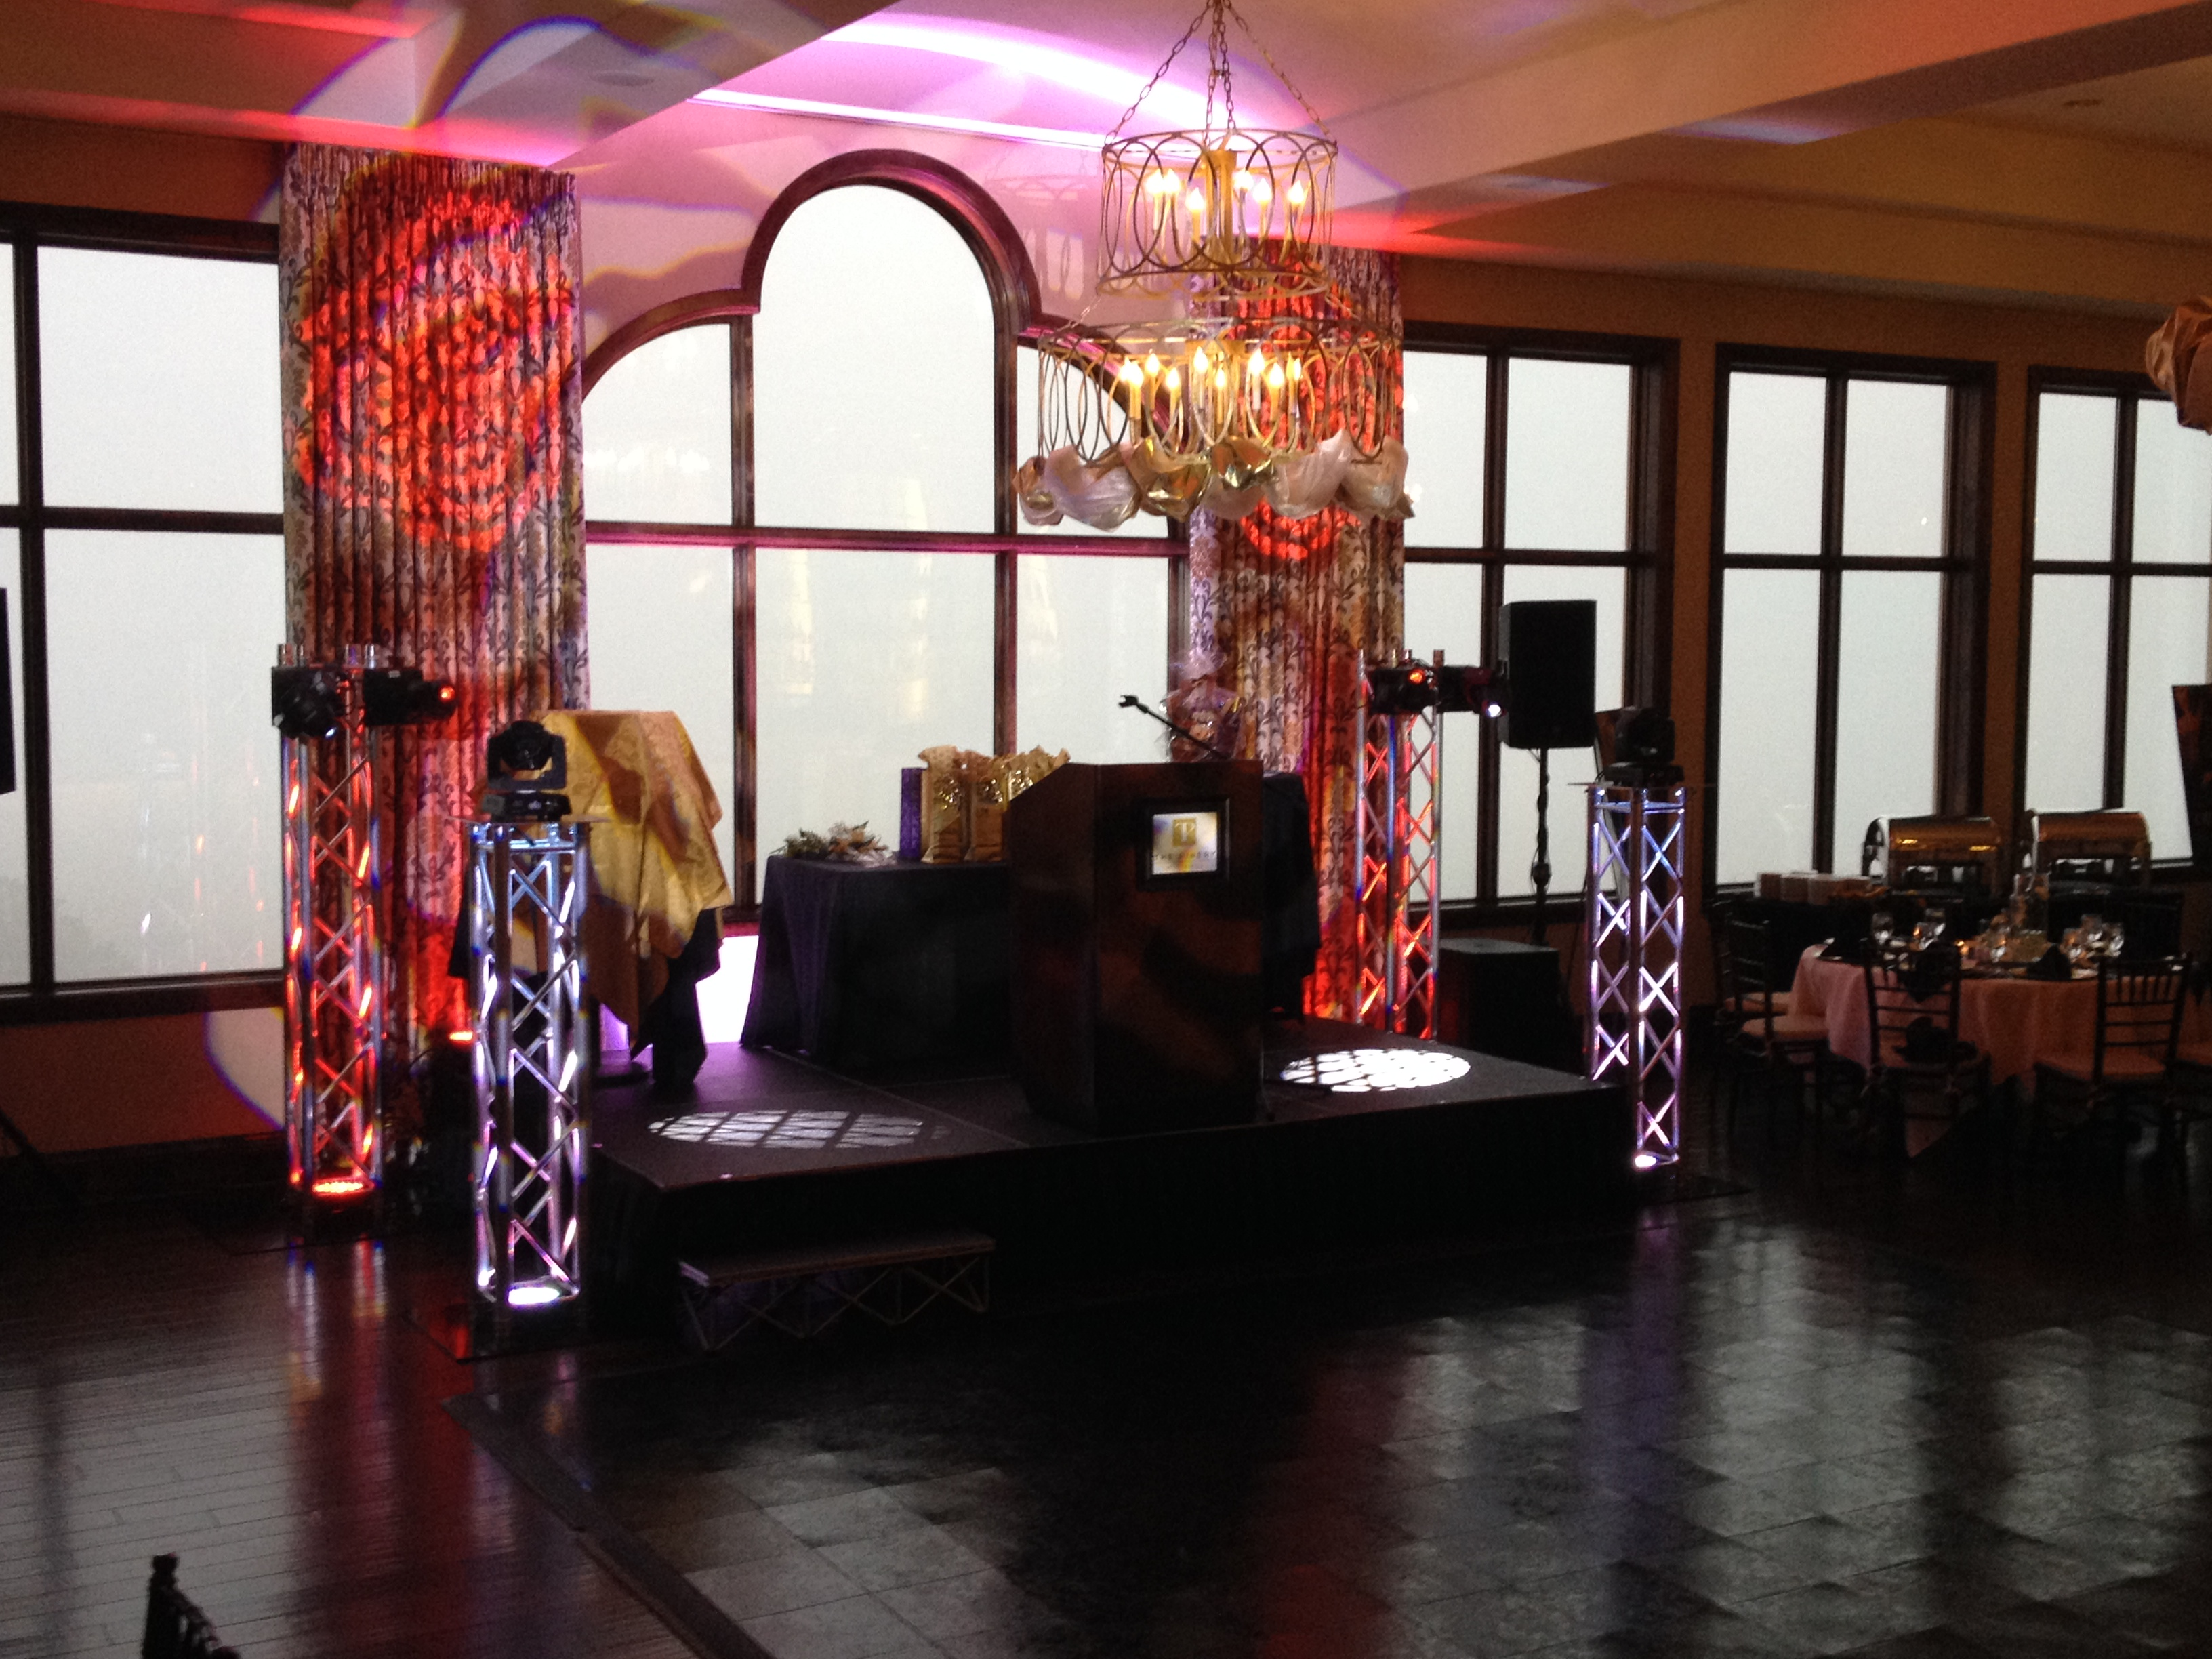 Corporate fundraiser setup